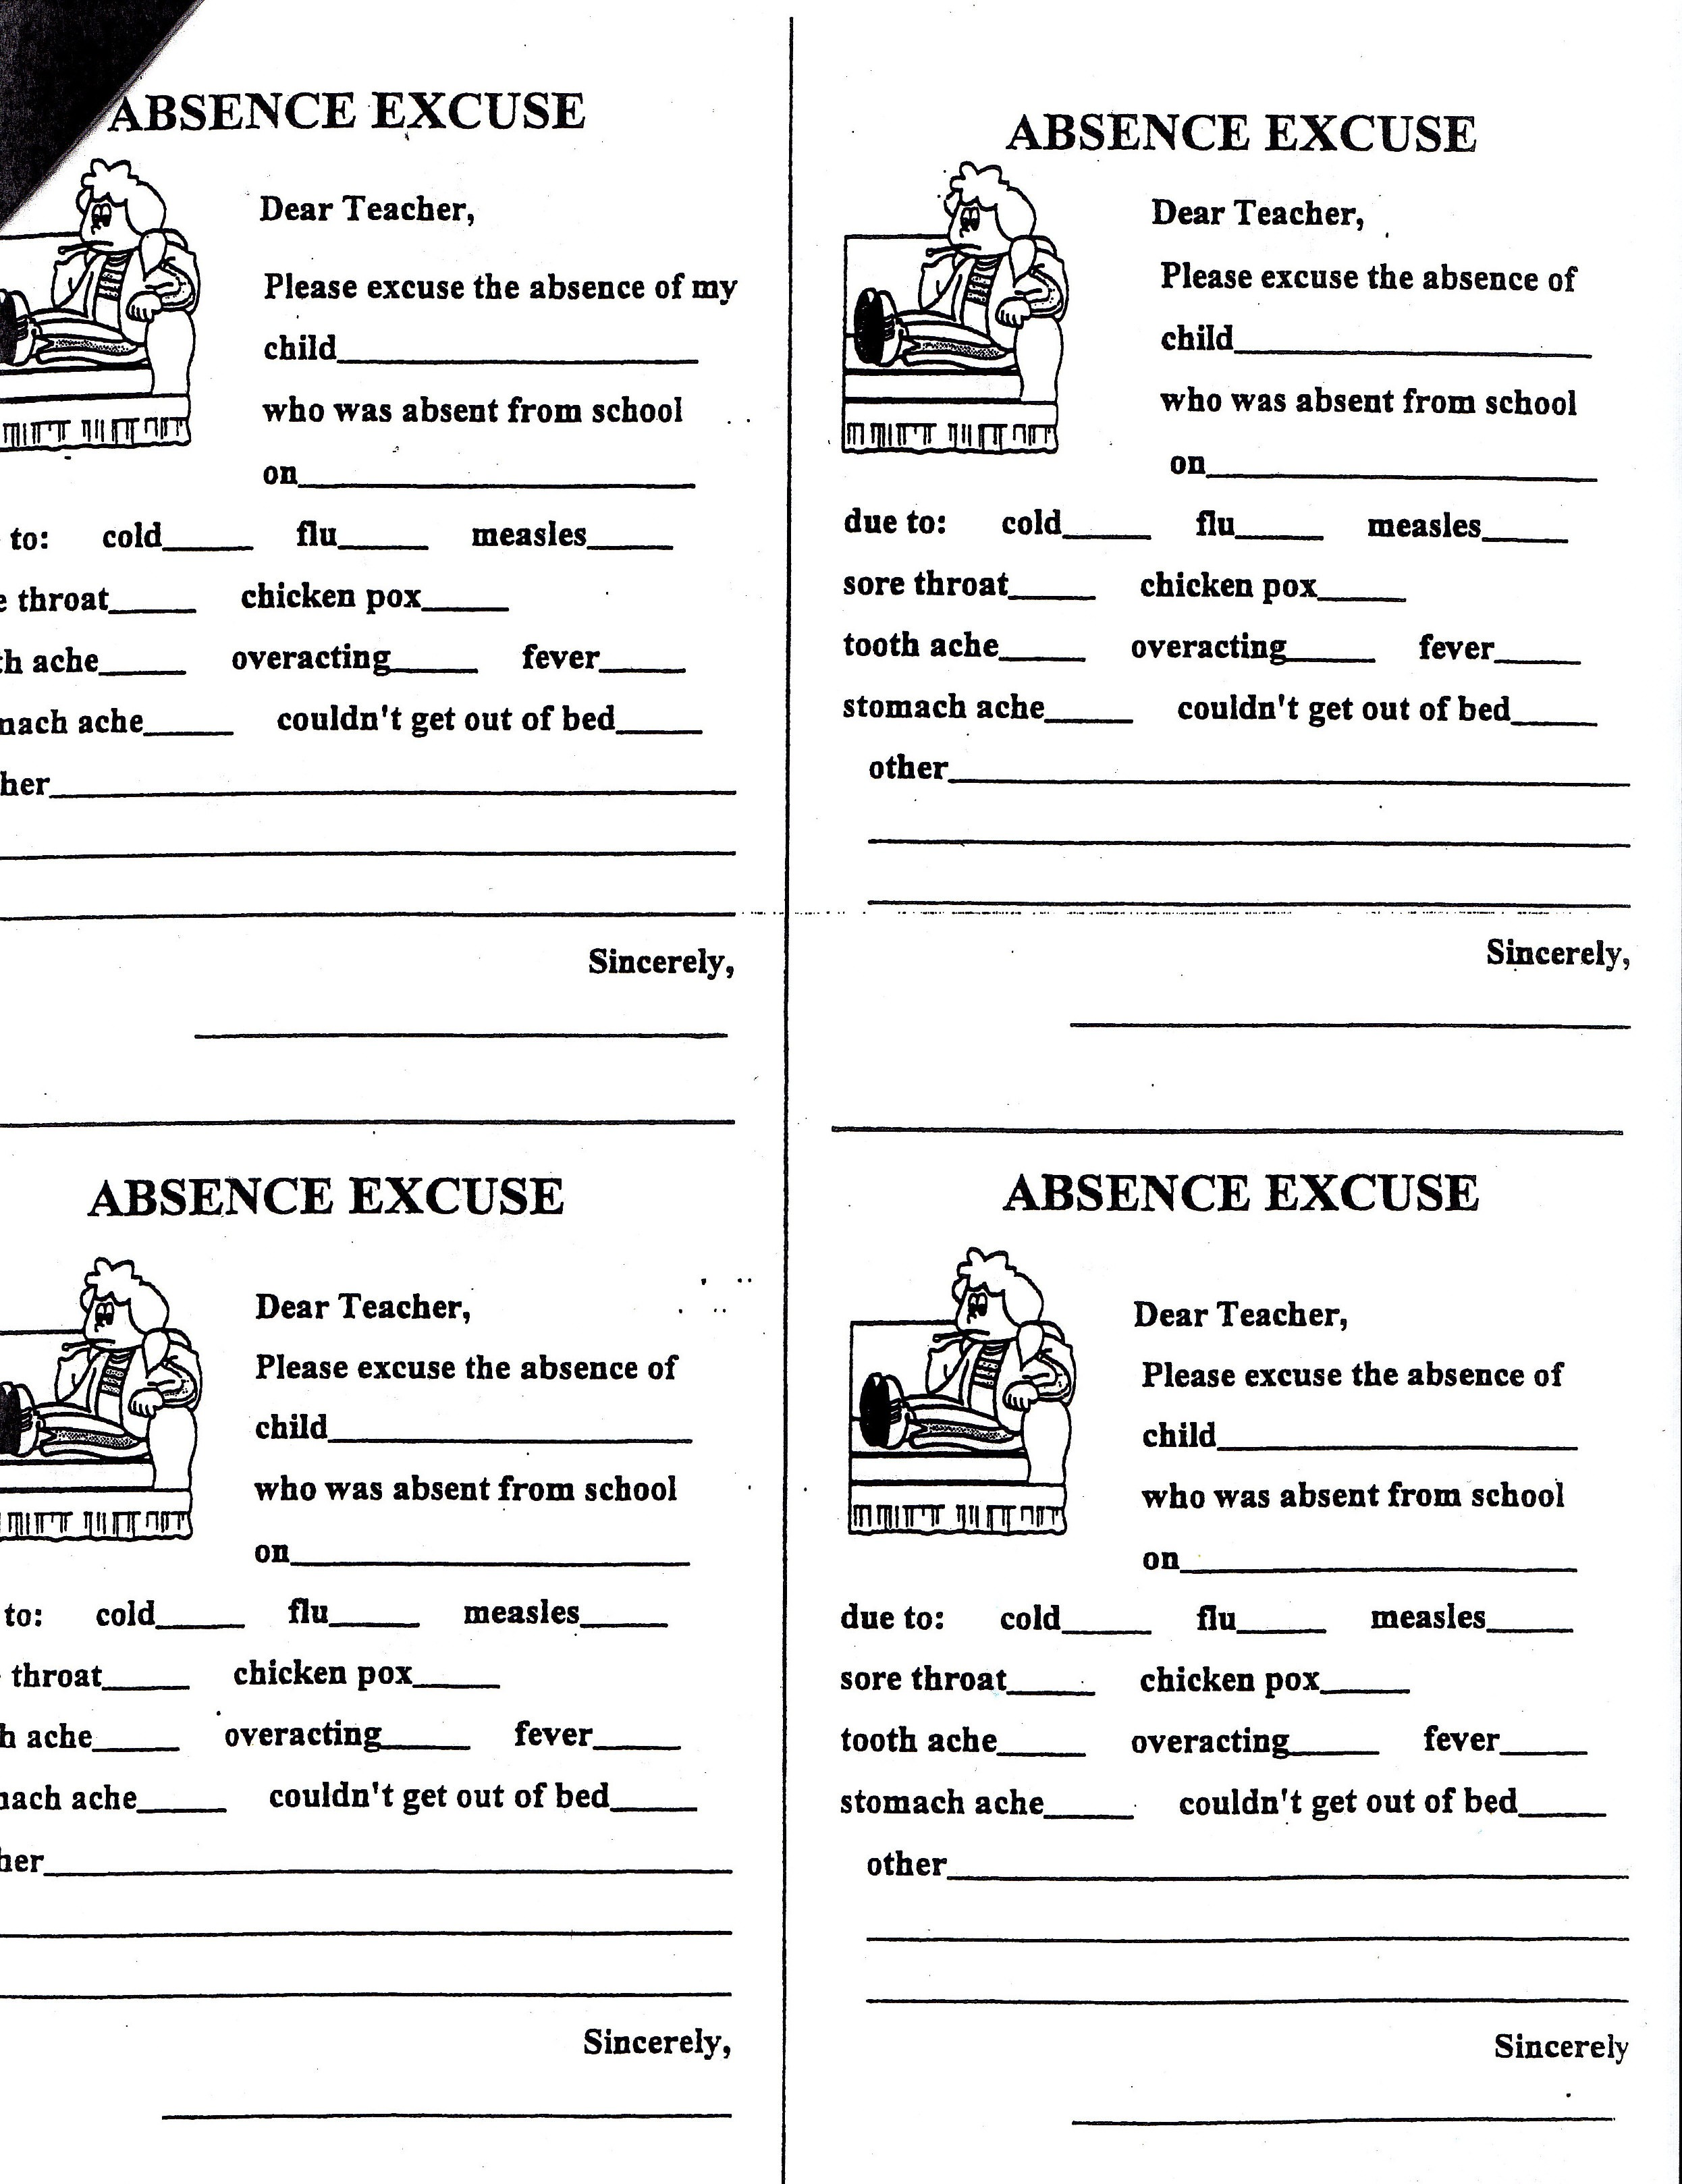 Kaiser Doctor Note Form Printable